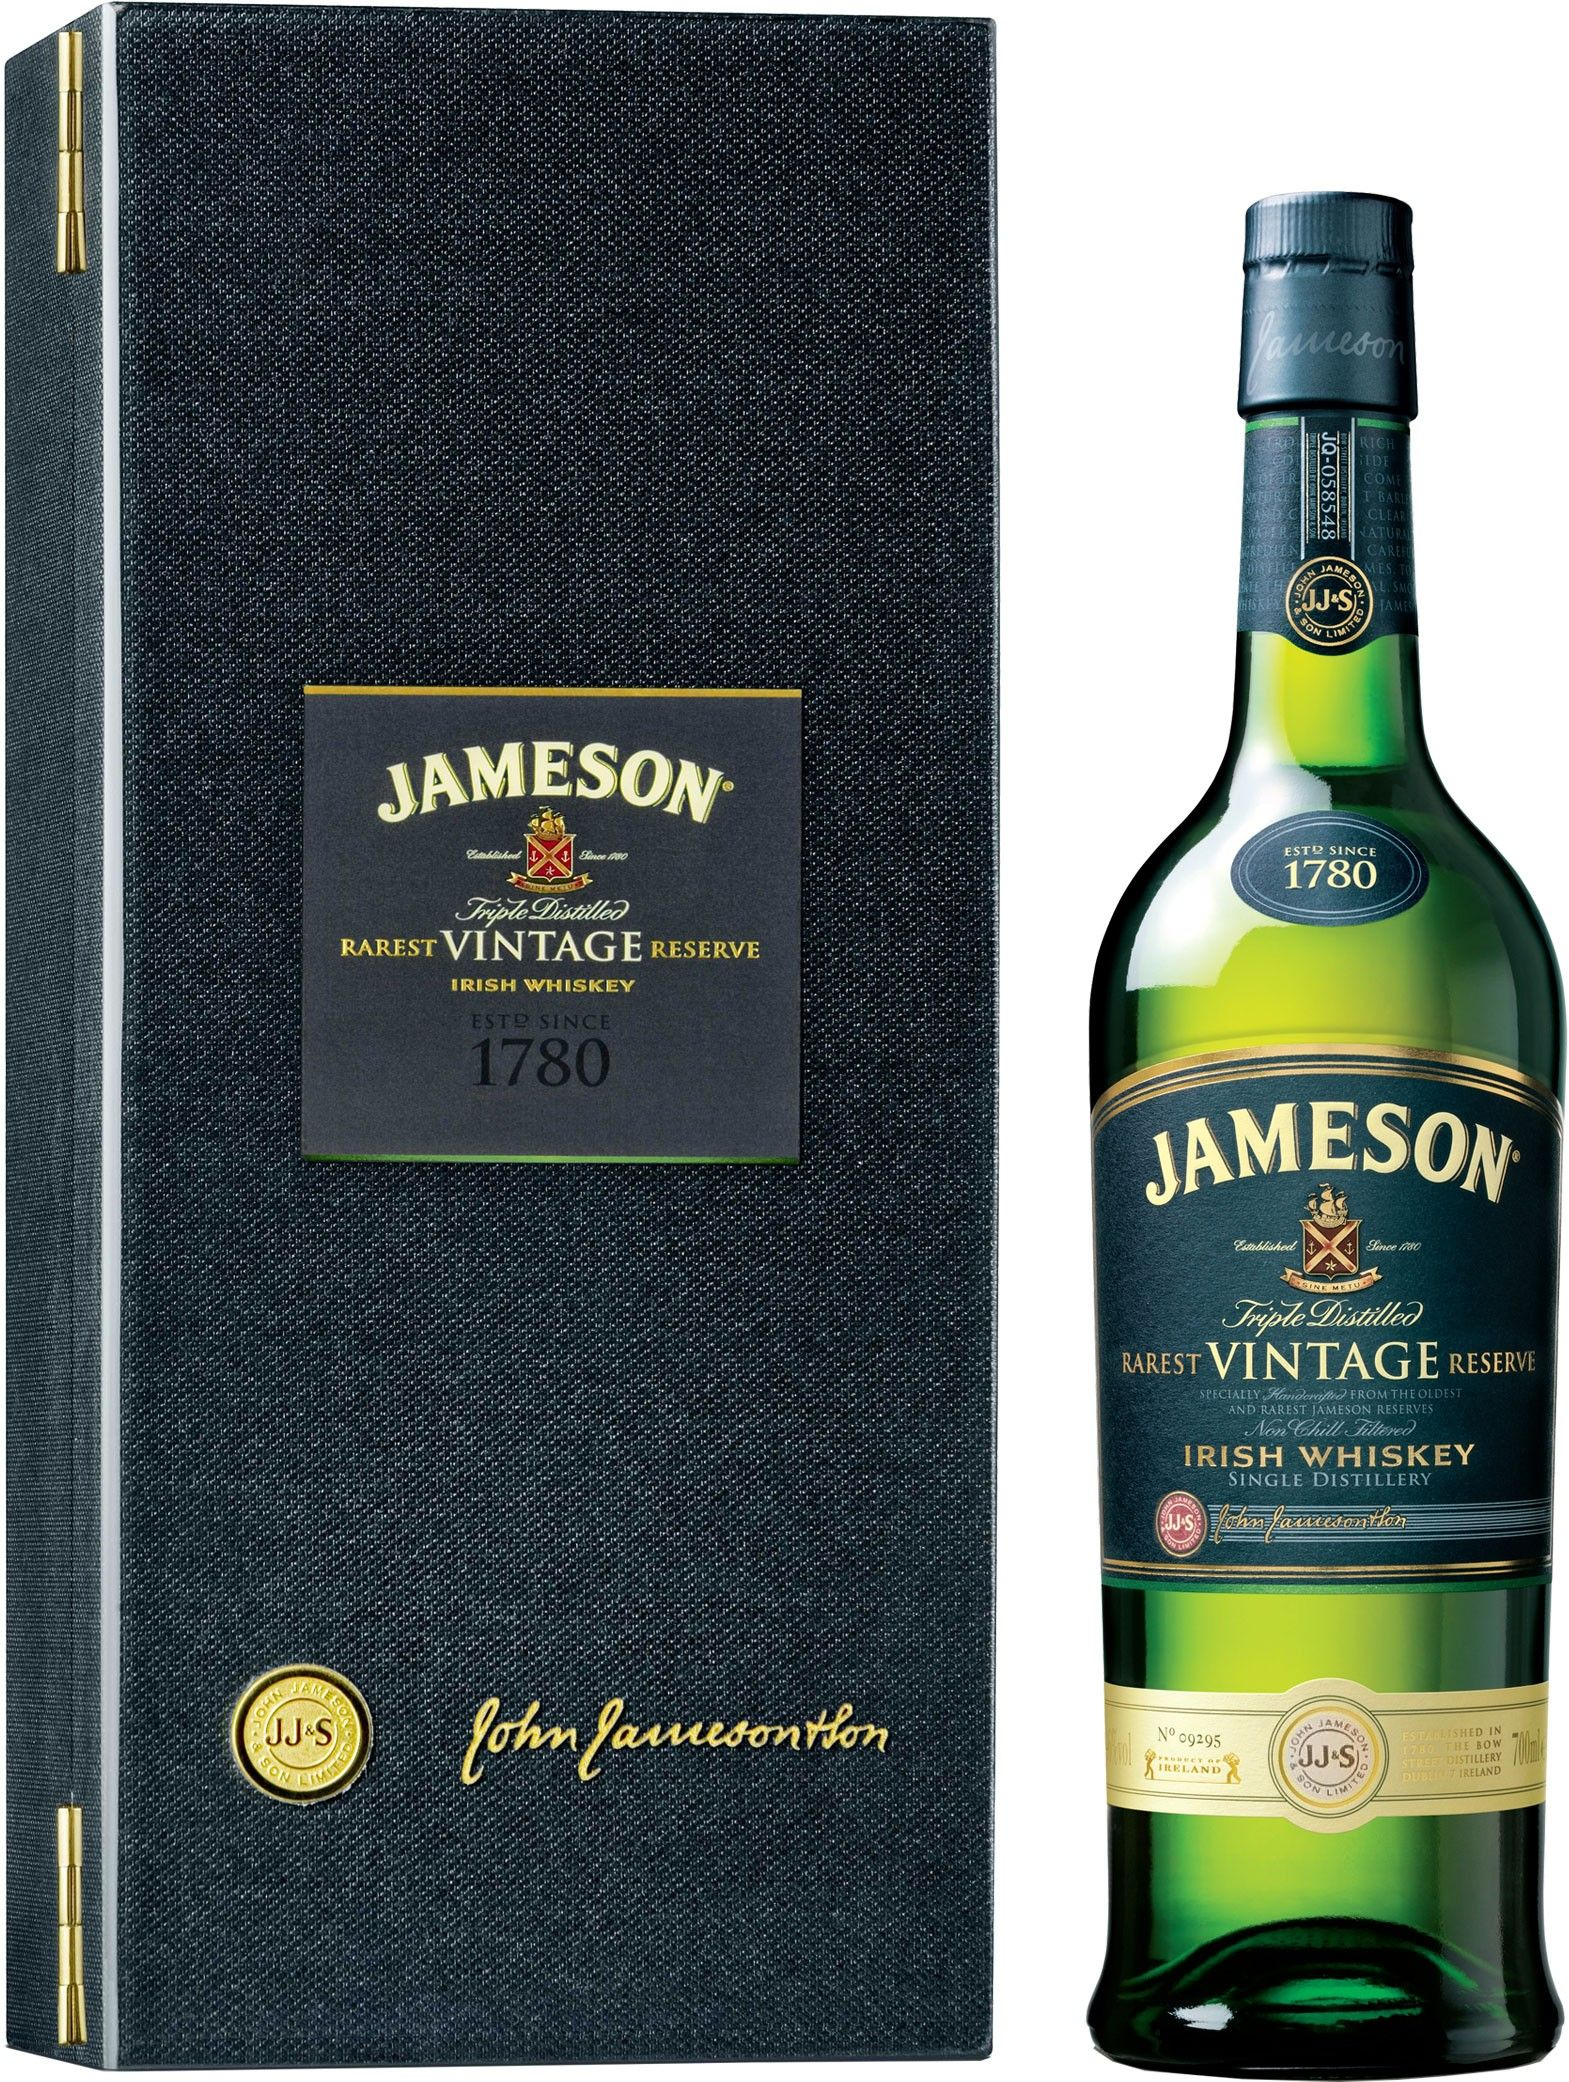 Jameson Rarest Vintage Reserve Irish Whiskey Caskers Jameson Irish Whiskey Irish Whiskey Whiskey